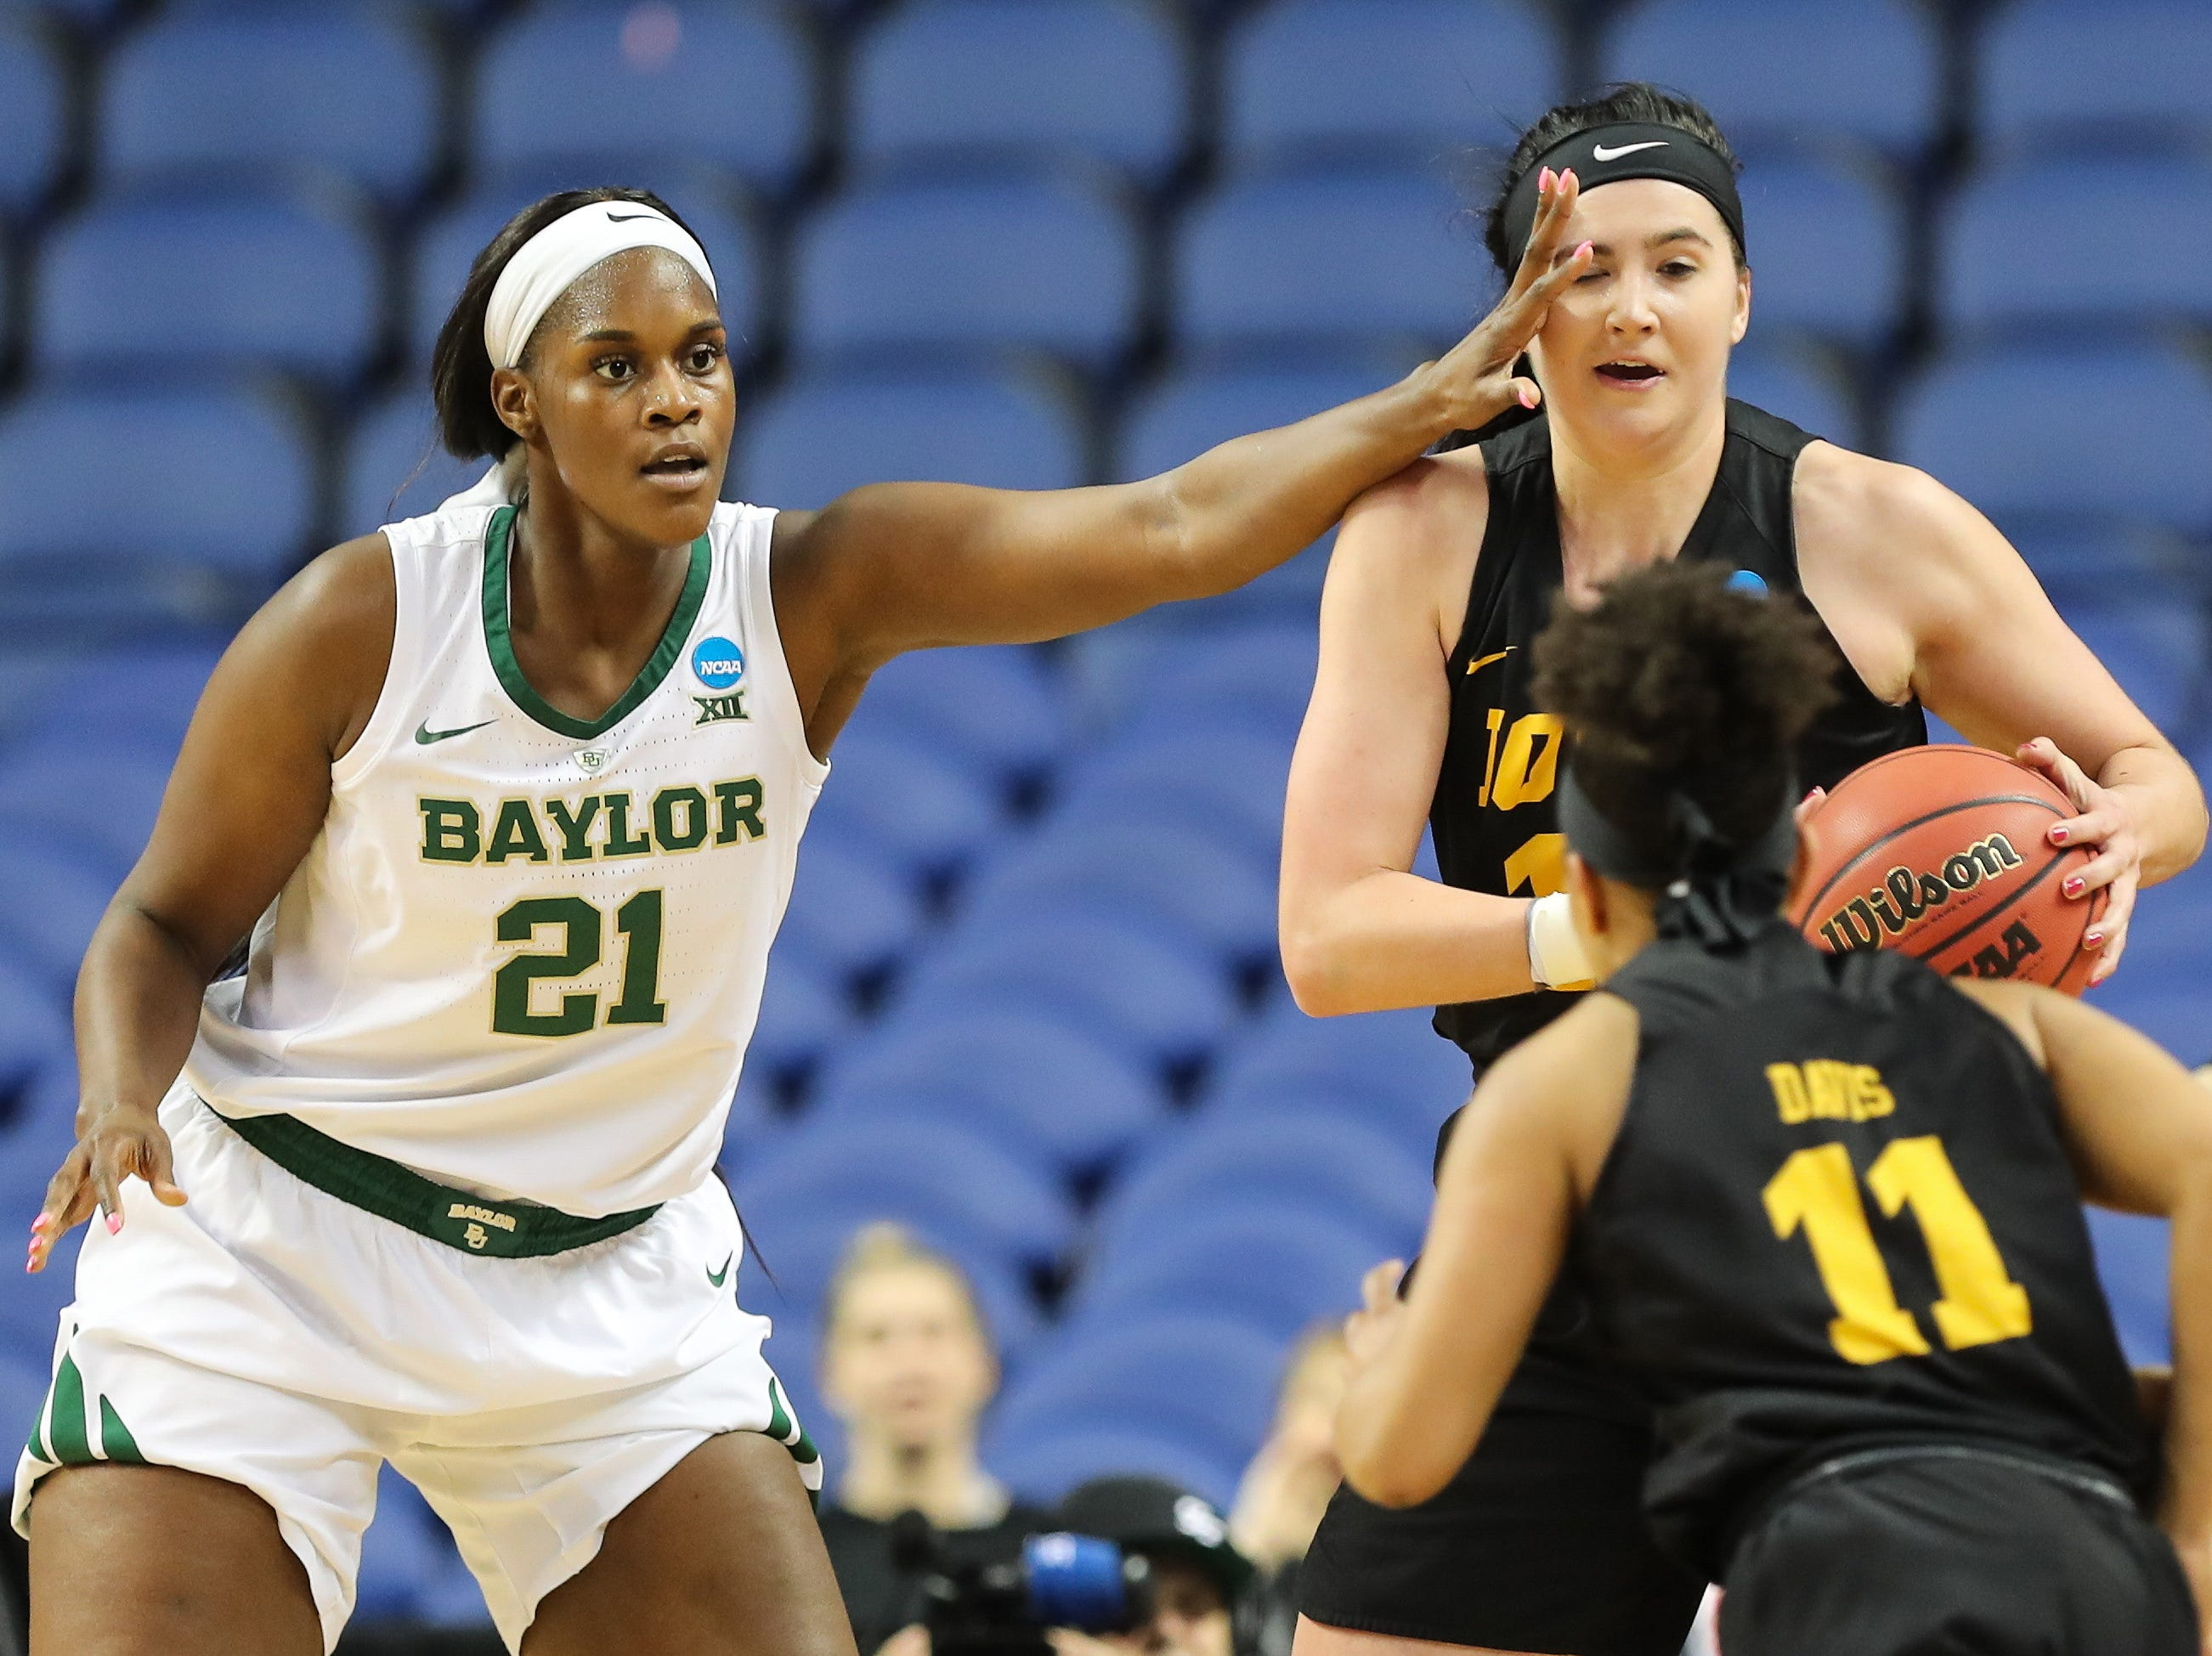 Iowa Hawkeyes forward Megan Gustafson (10) gets bumped by Baylor Lady Bears center Kalani Brown (21) during the first half in the championship game of the Greensboro regional in the women's 2019 NCAA Tournament at the Greensboro Coliseum.